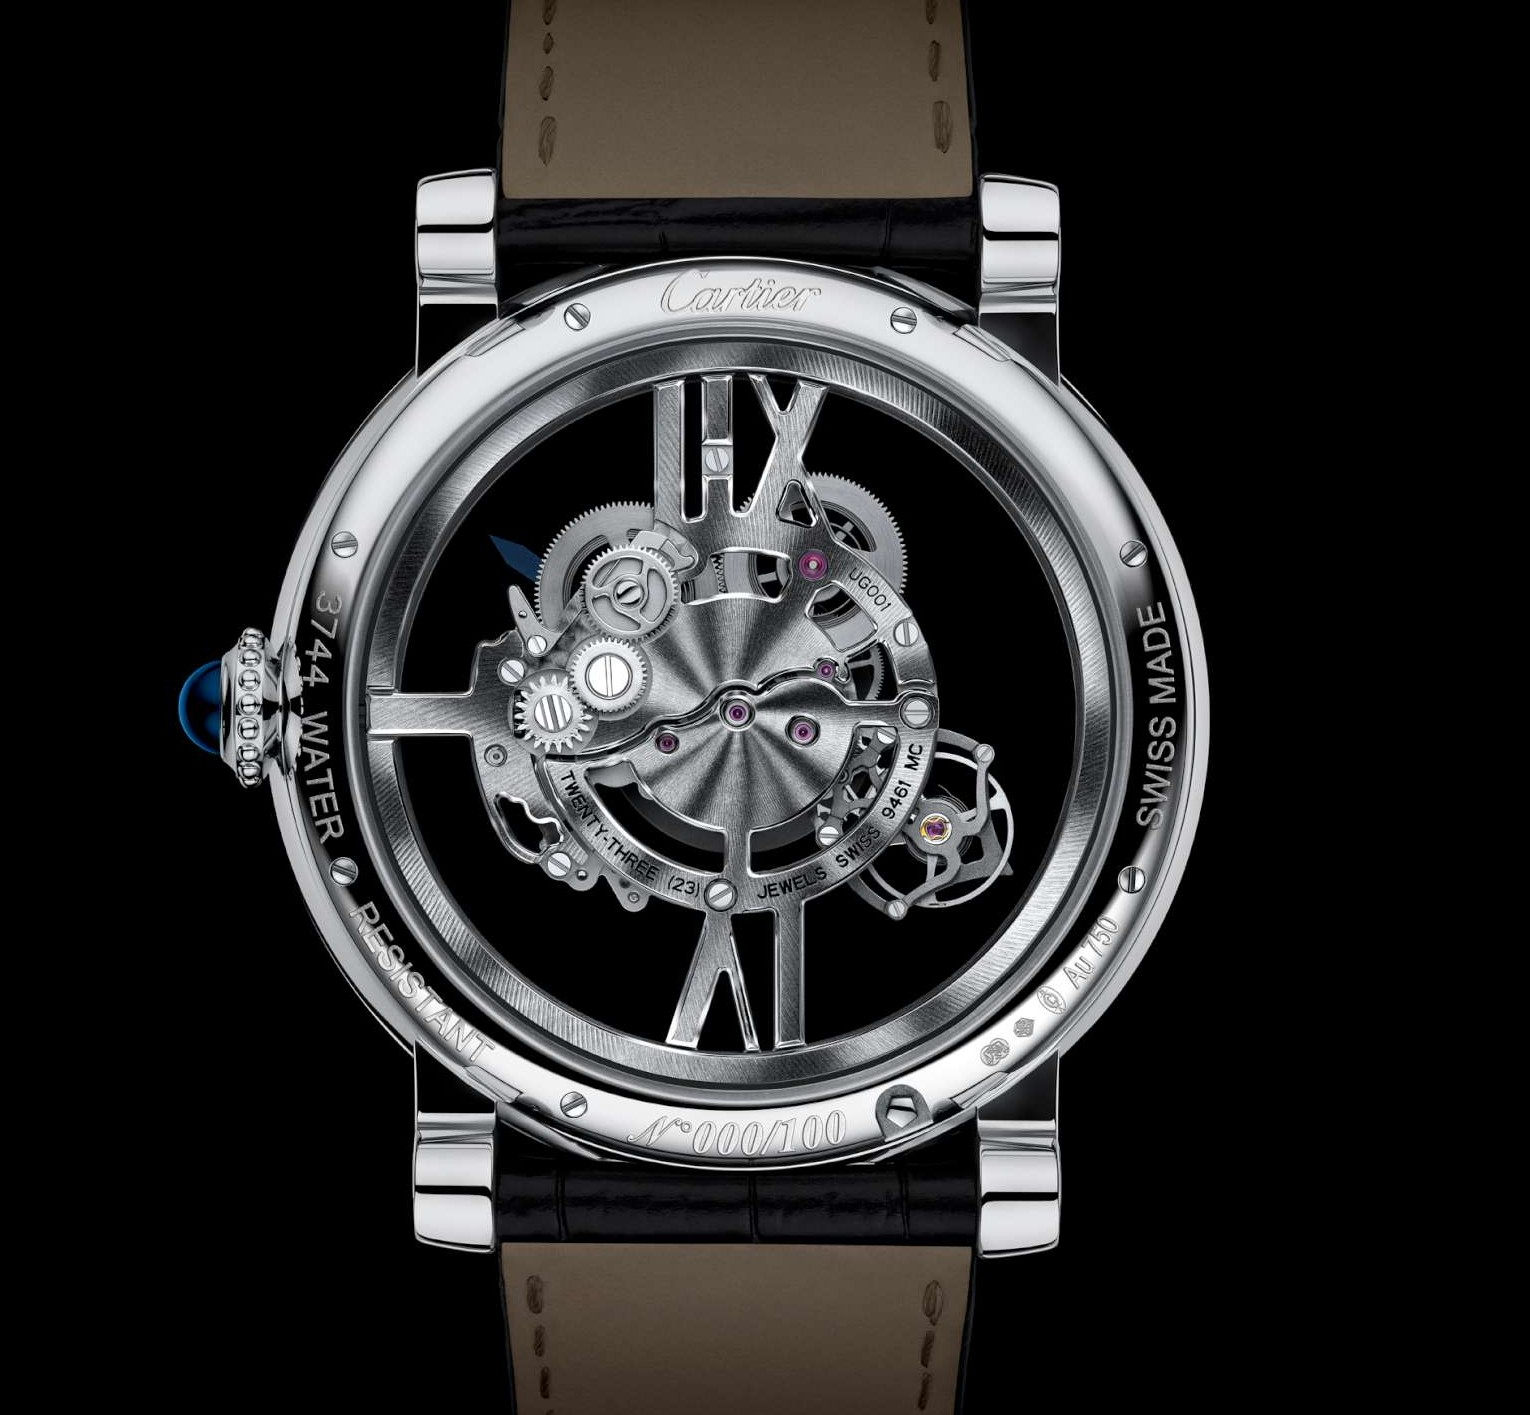 03_ASTROTOURBILLON_SKELETON_BACK-2000